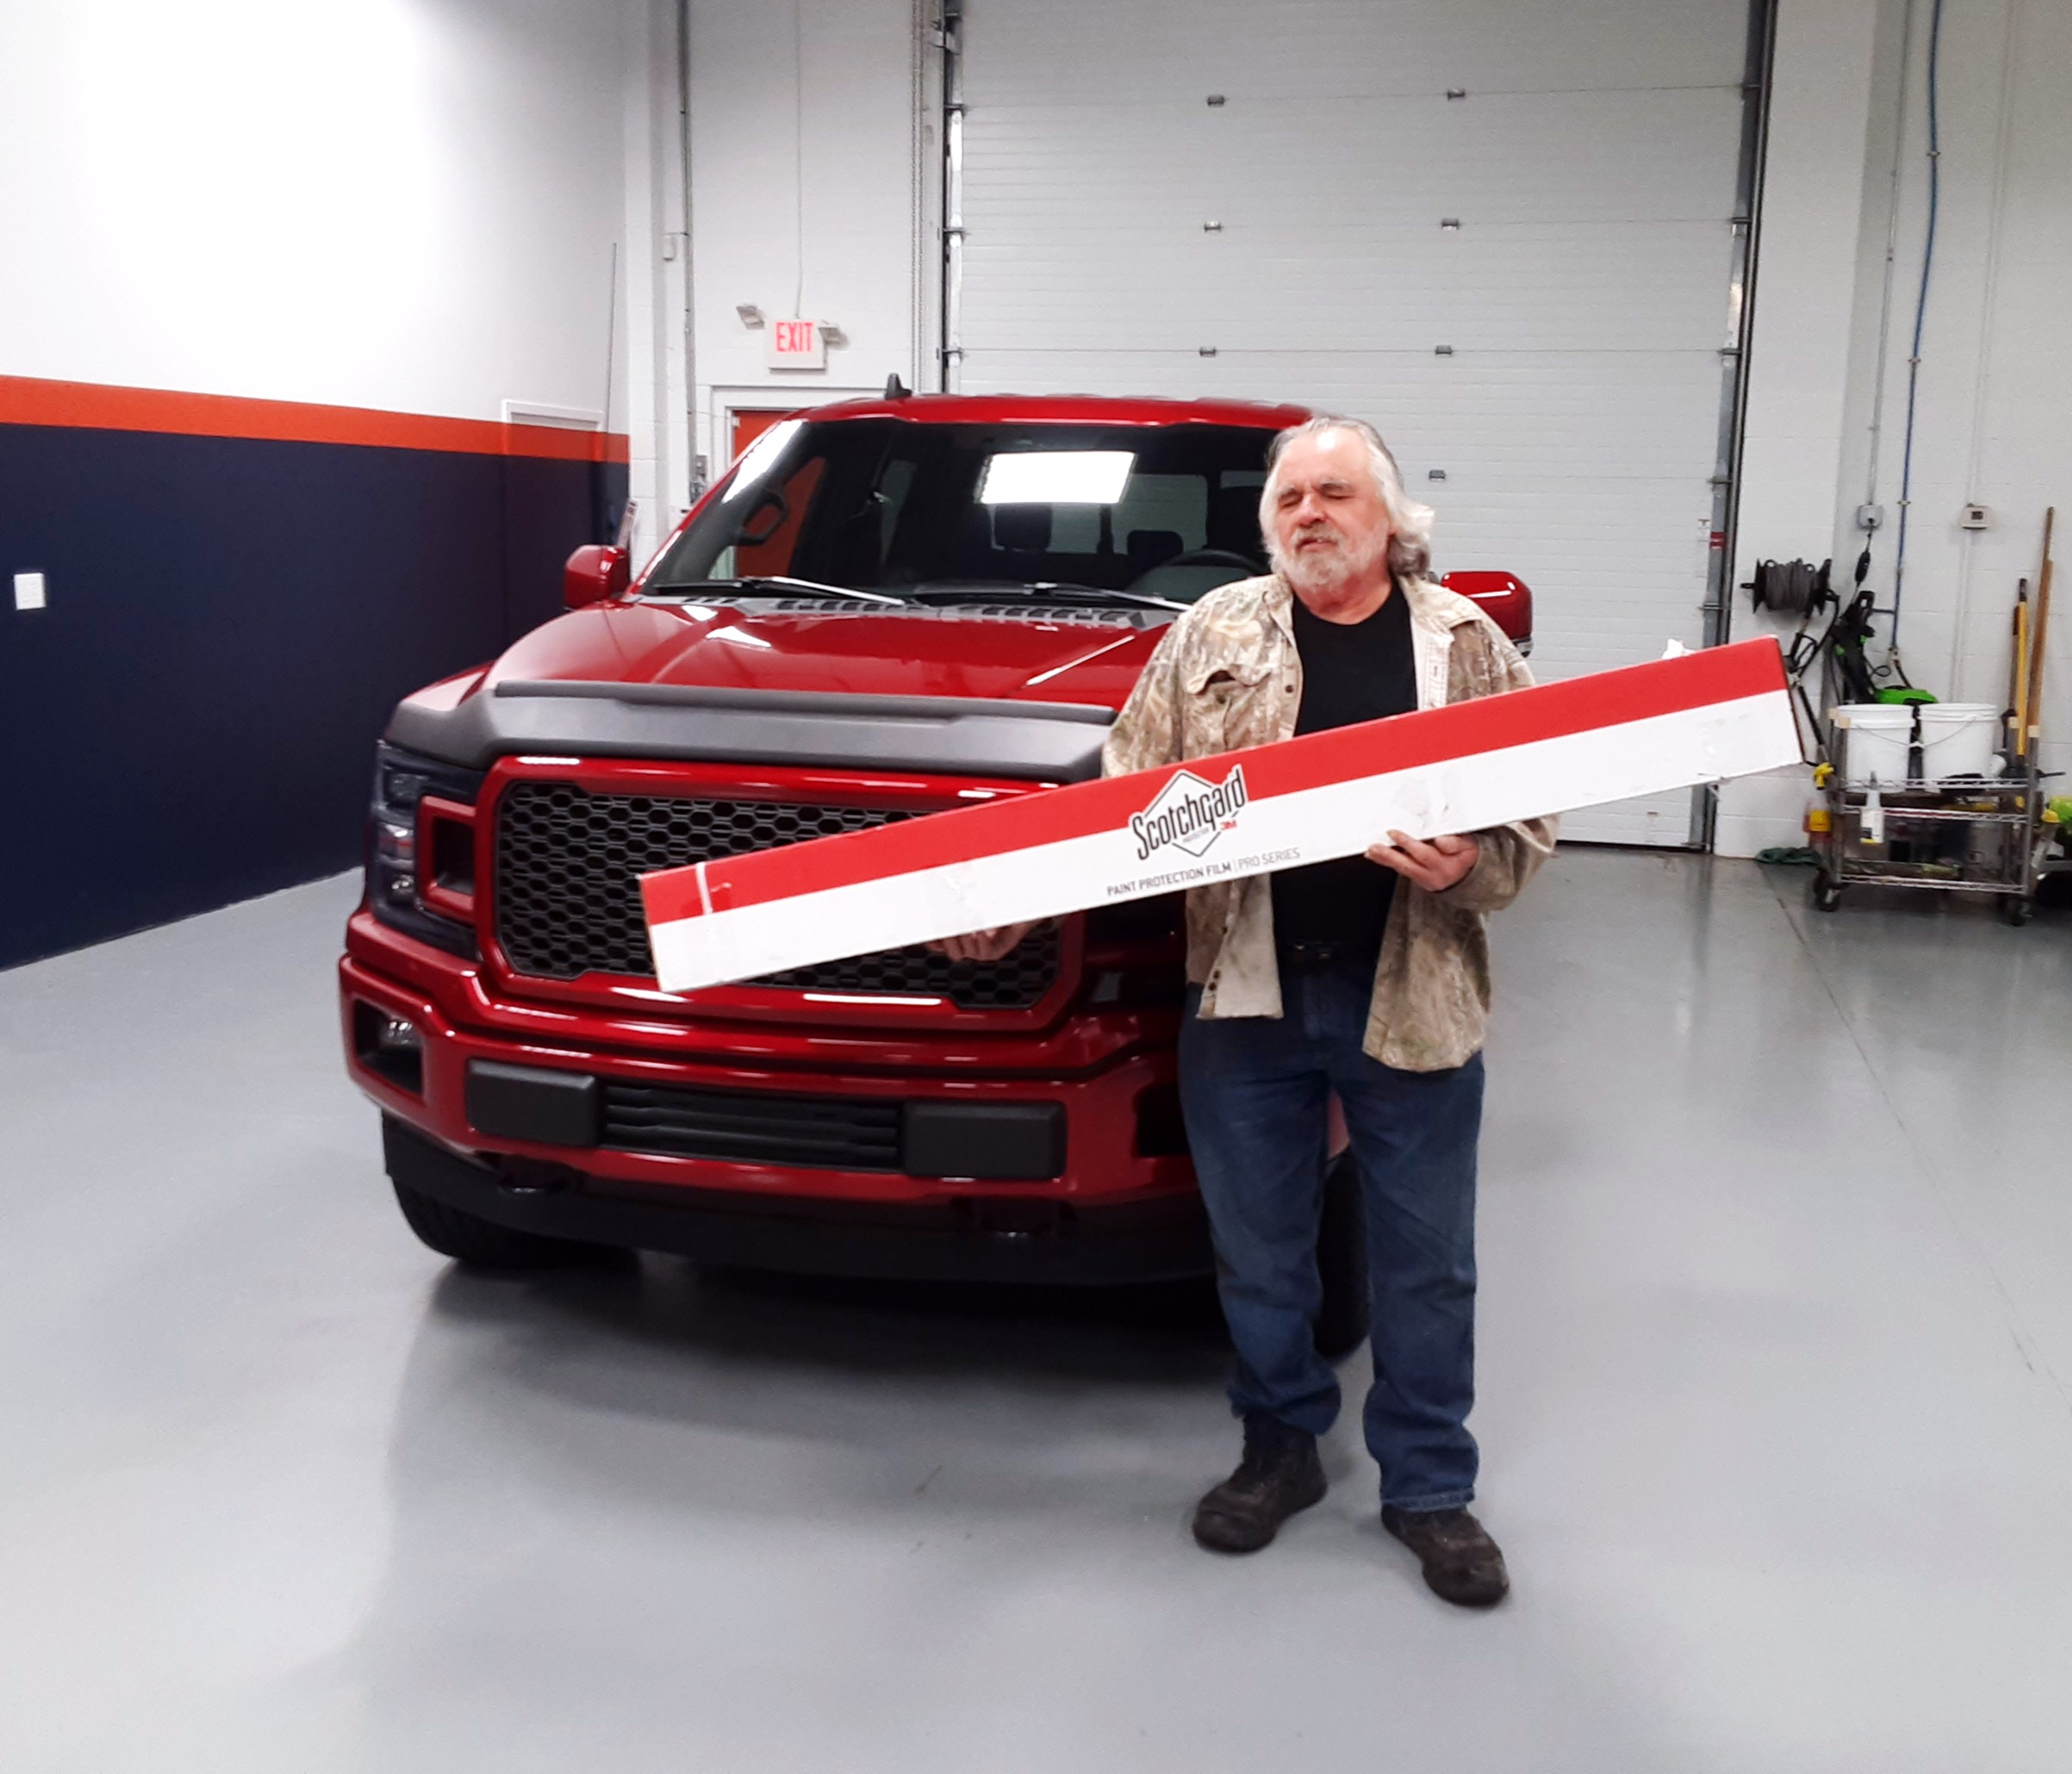 2020 Ford F150 Paint Protection Film on Bumper